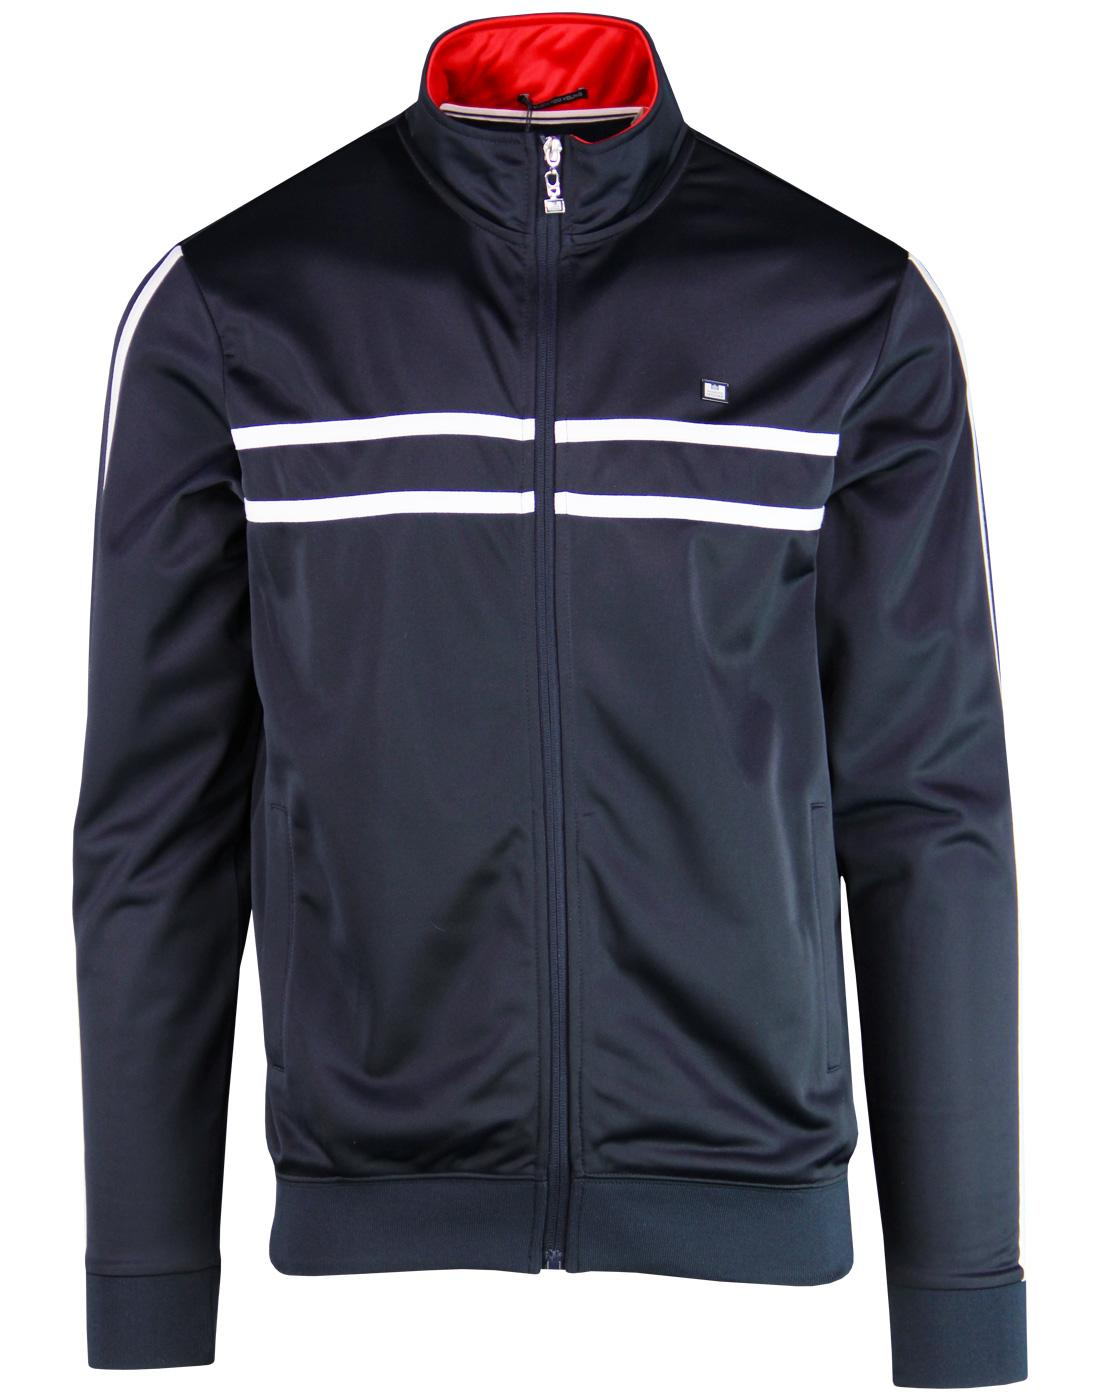 Kesey WEEKEND OFFENDER Retro Casuals Track Jacket